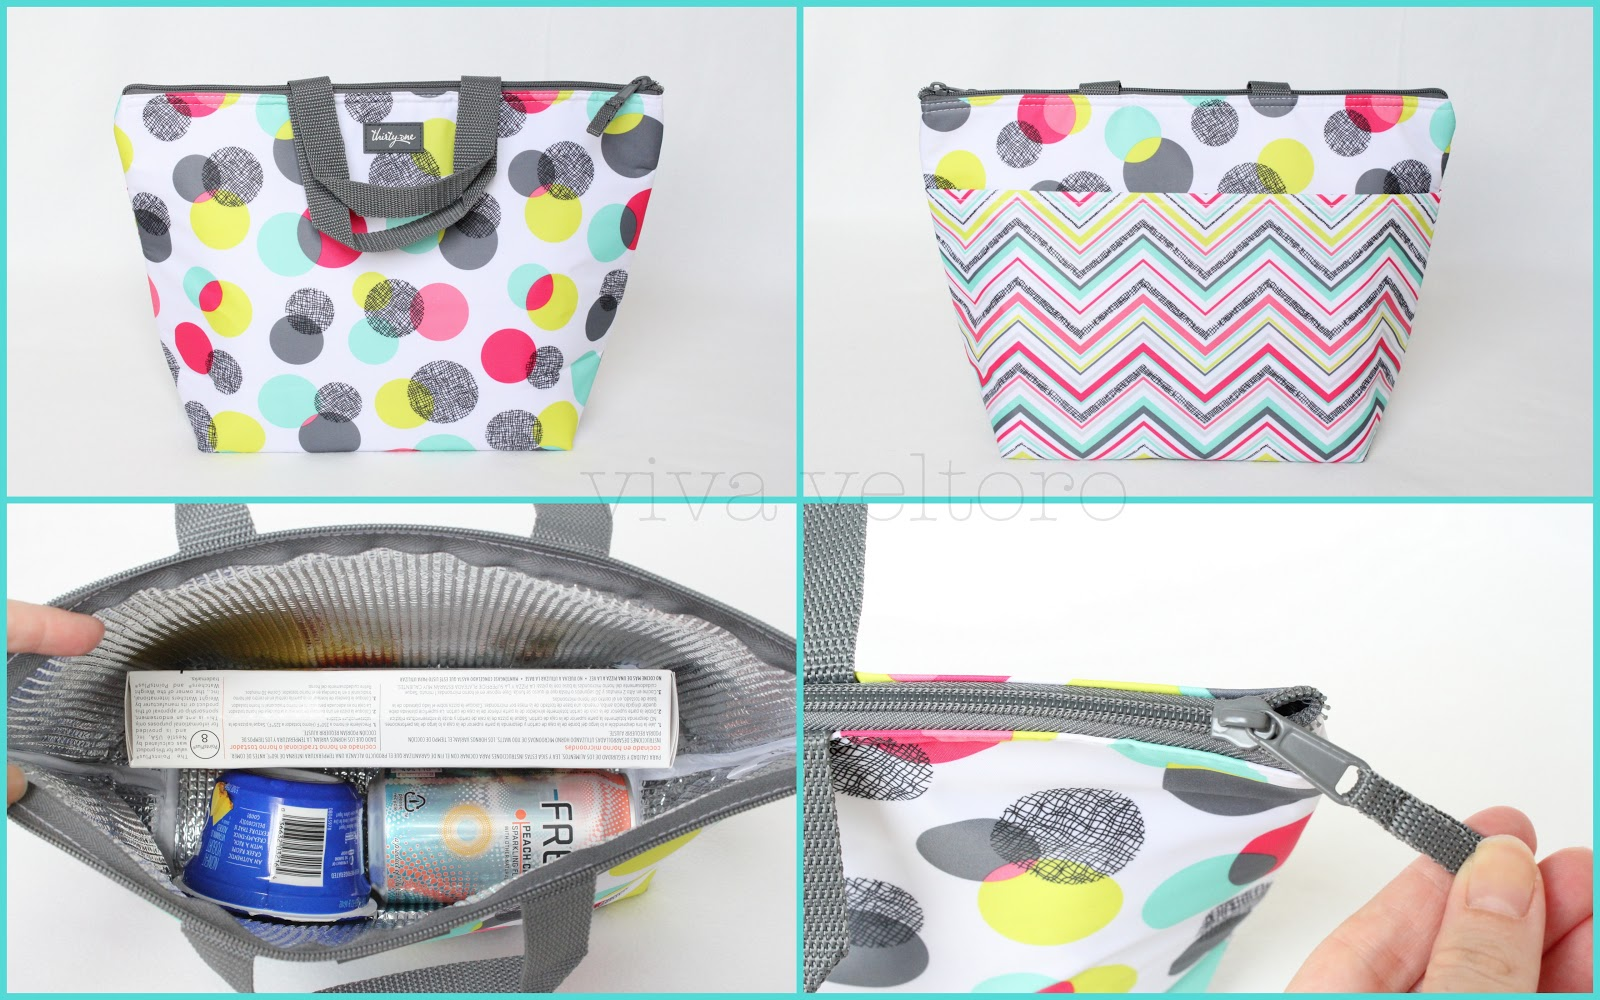 Thirty One Gifts Organizing Utility Tote And Thermal Review Viva Veltoro